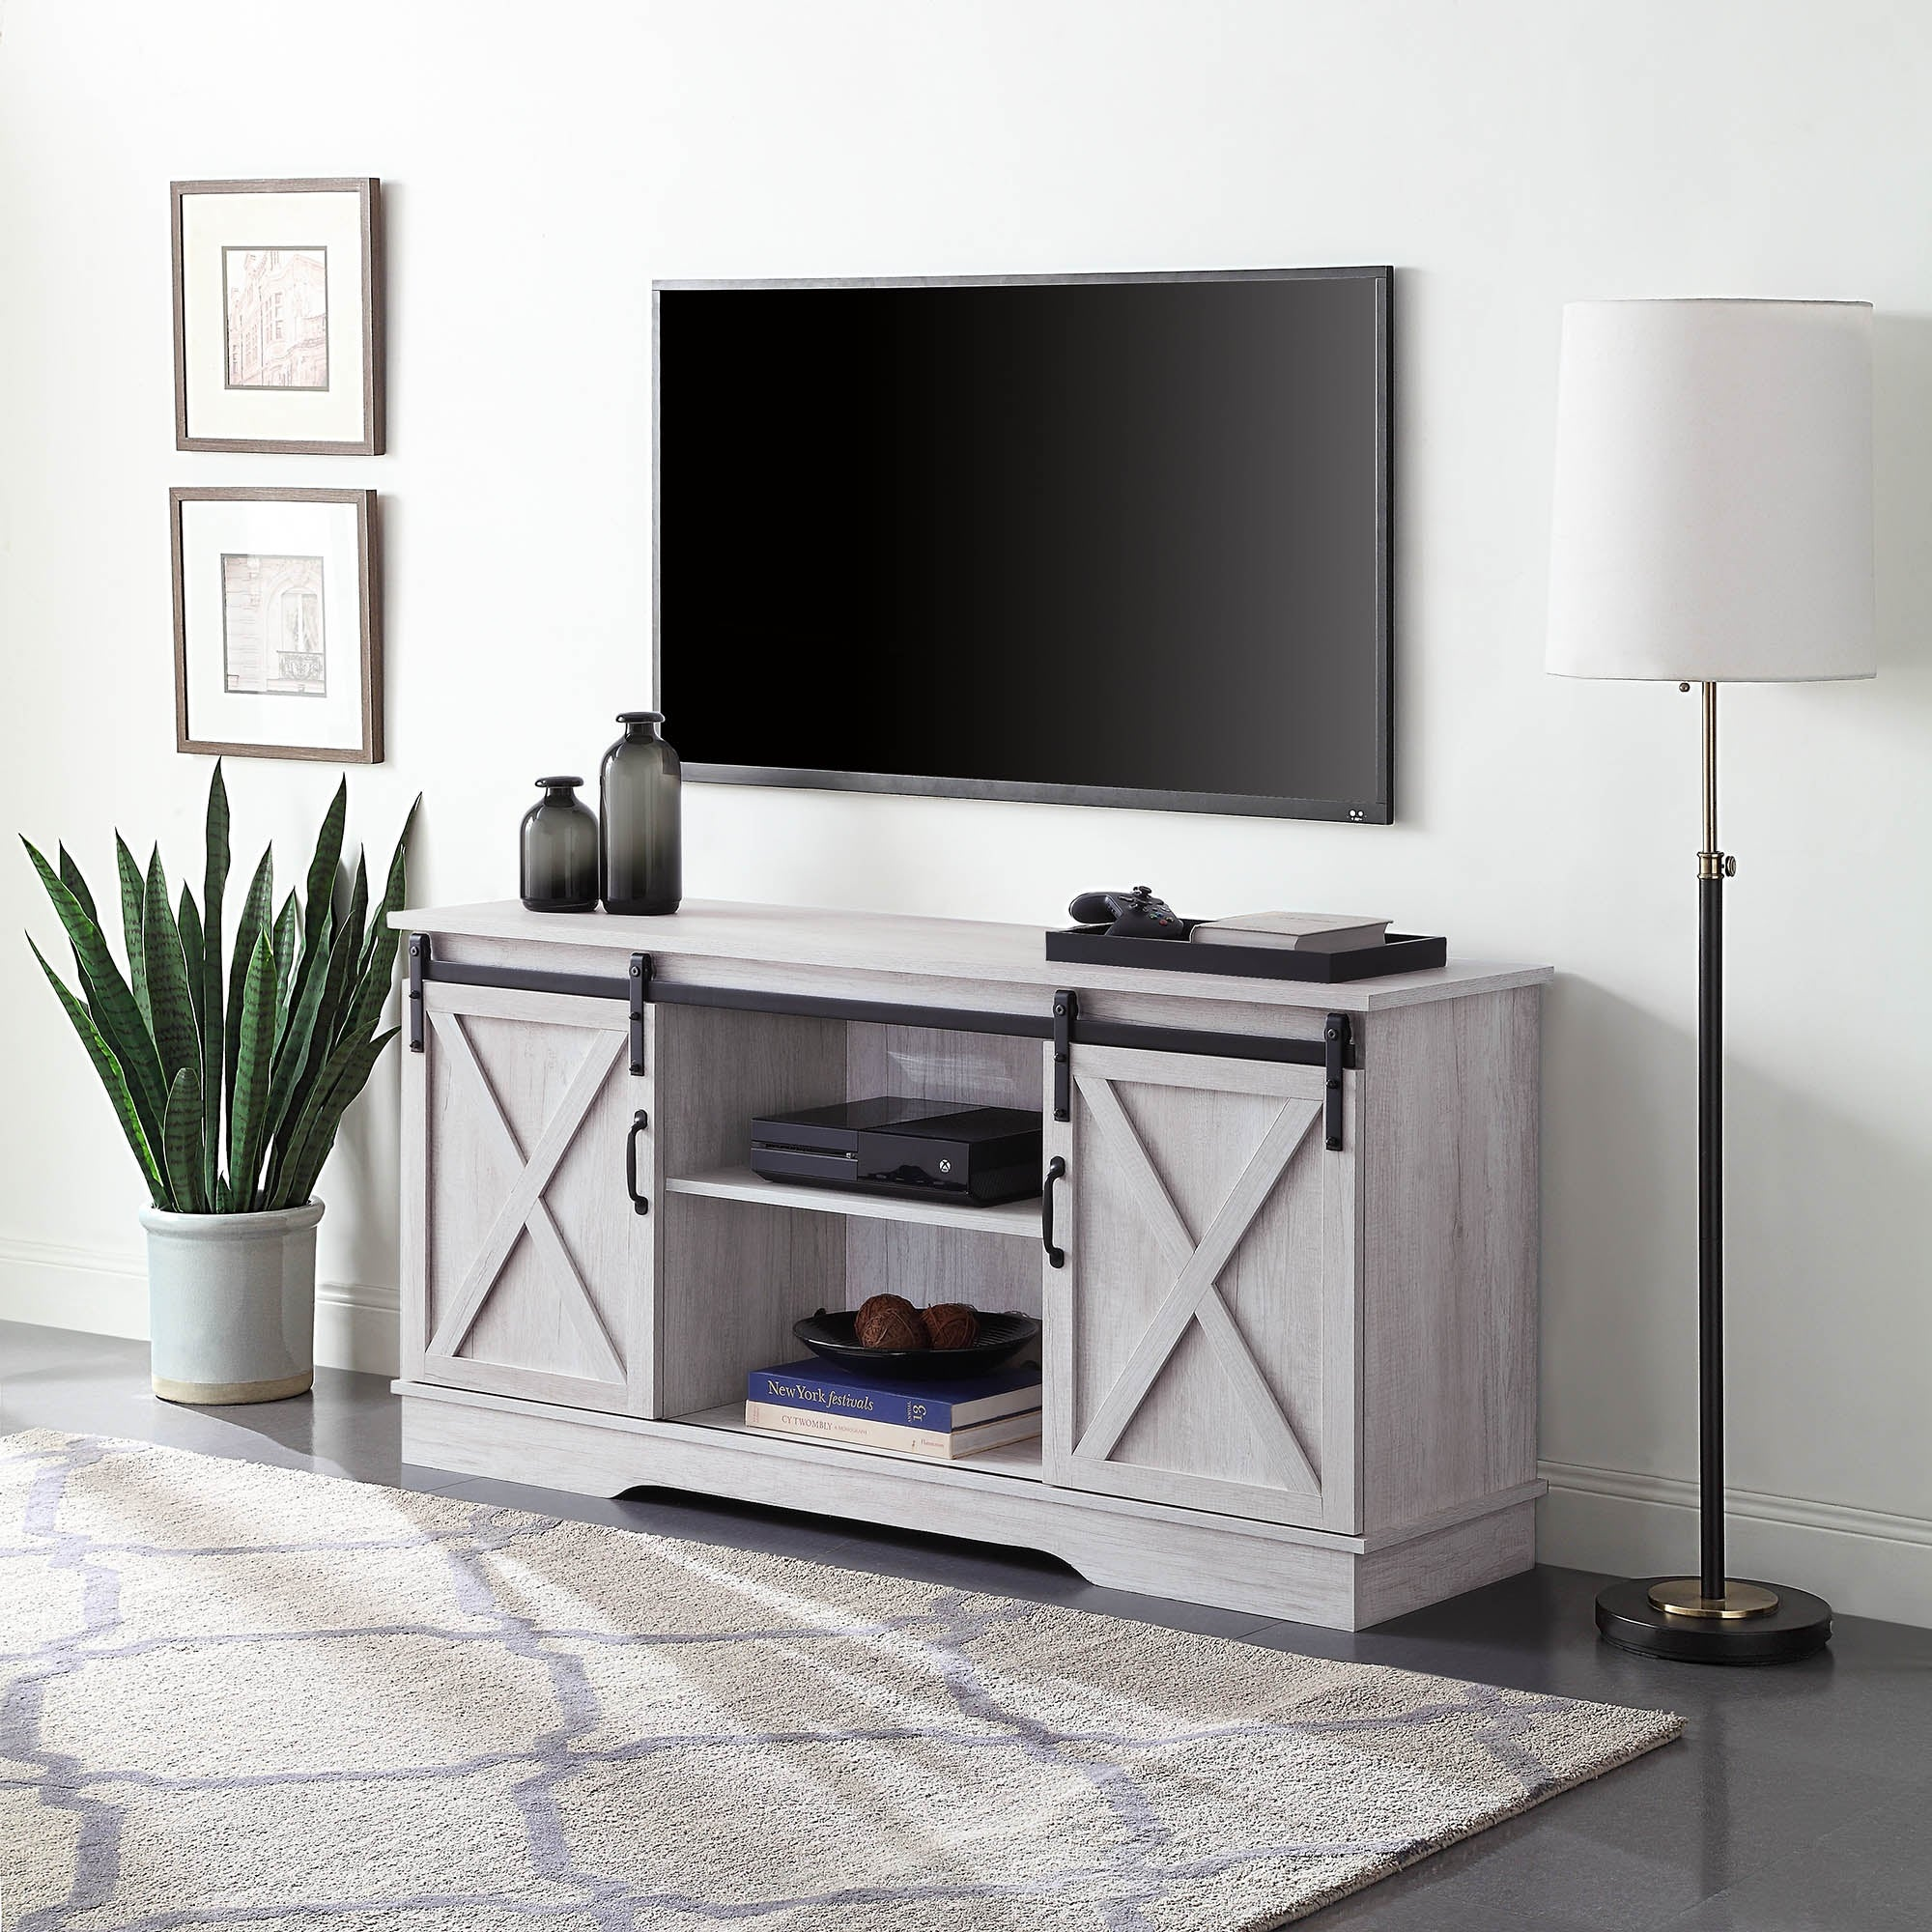 Belleze 58 Sliding Barn Door Tv Stand For Tvs Up To 65 Sargent Oak Standard On Sale Overstock 29547857